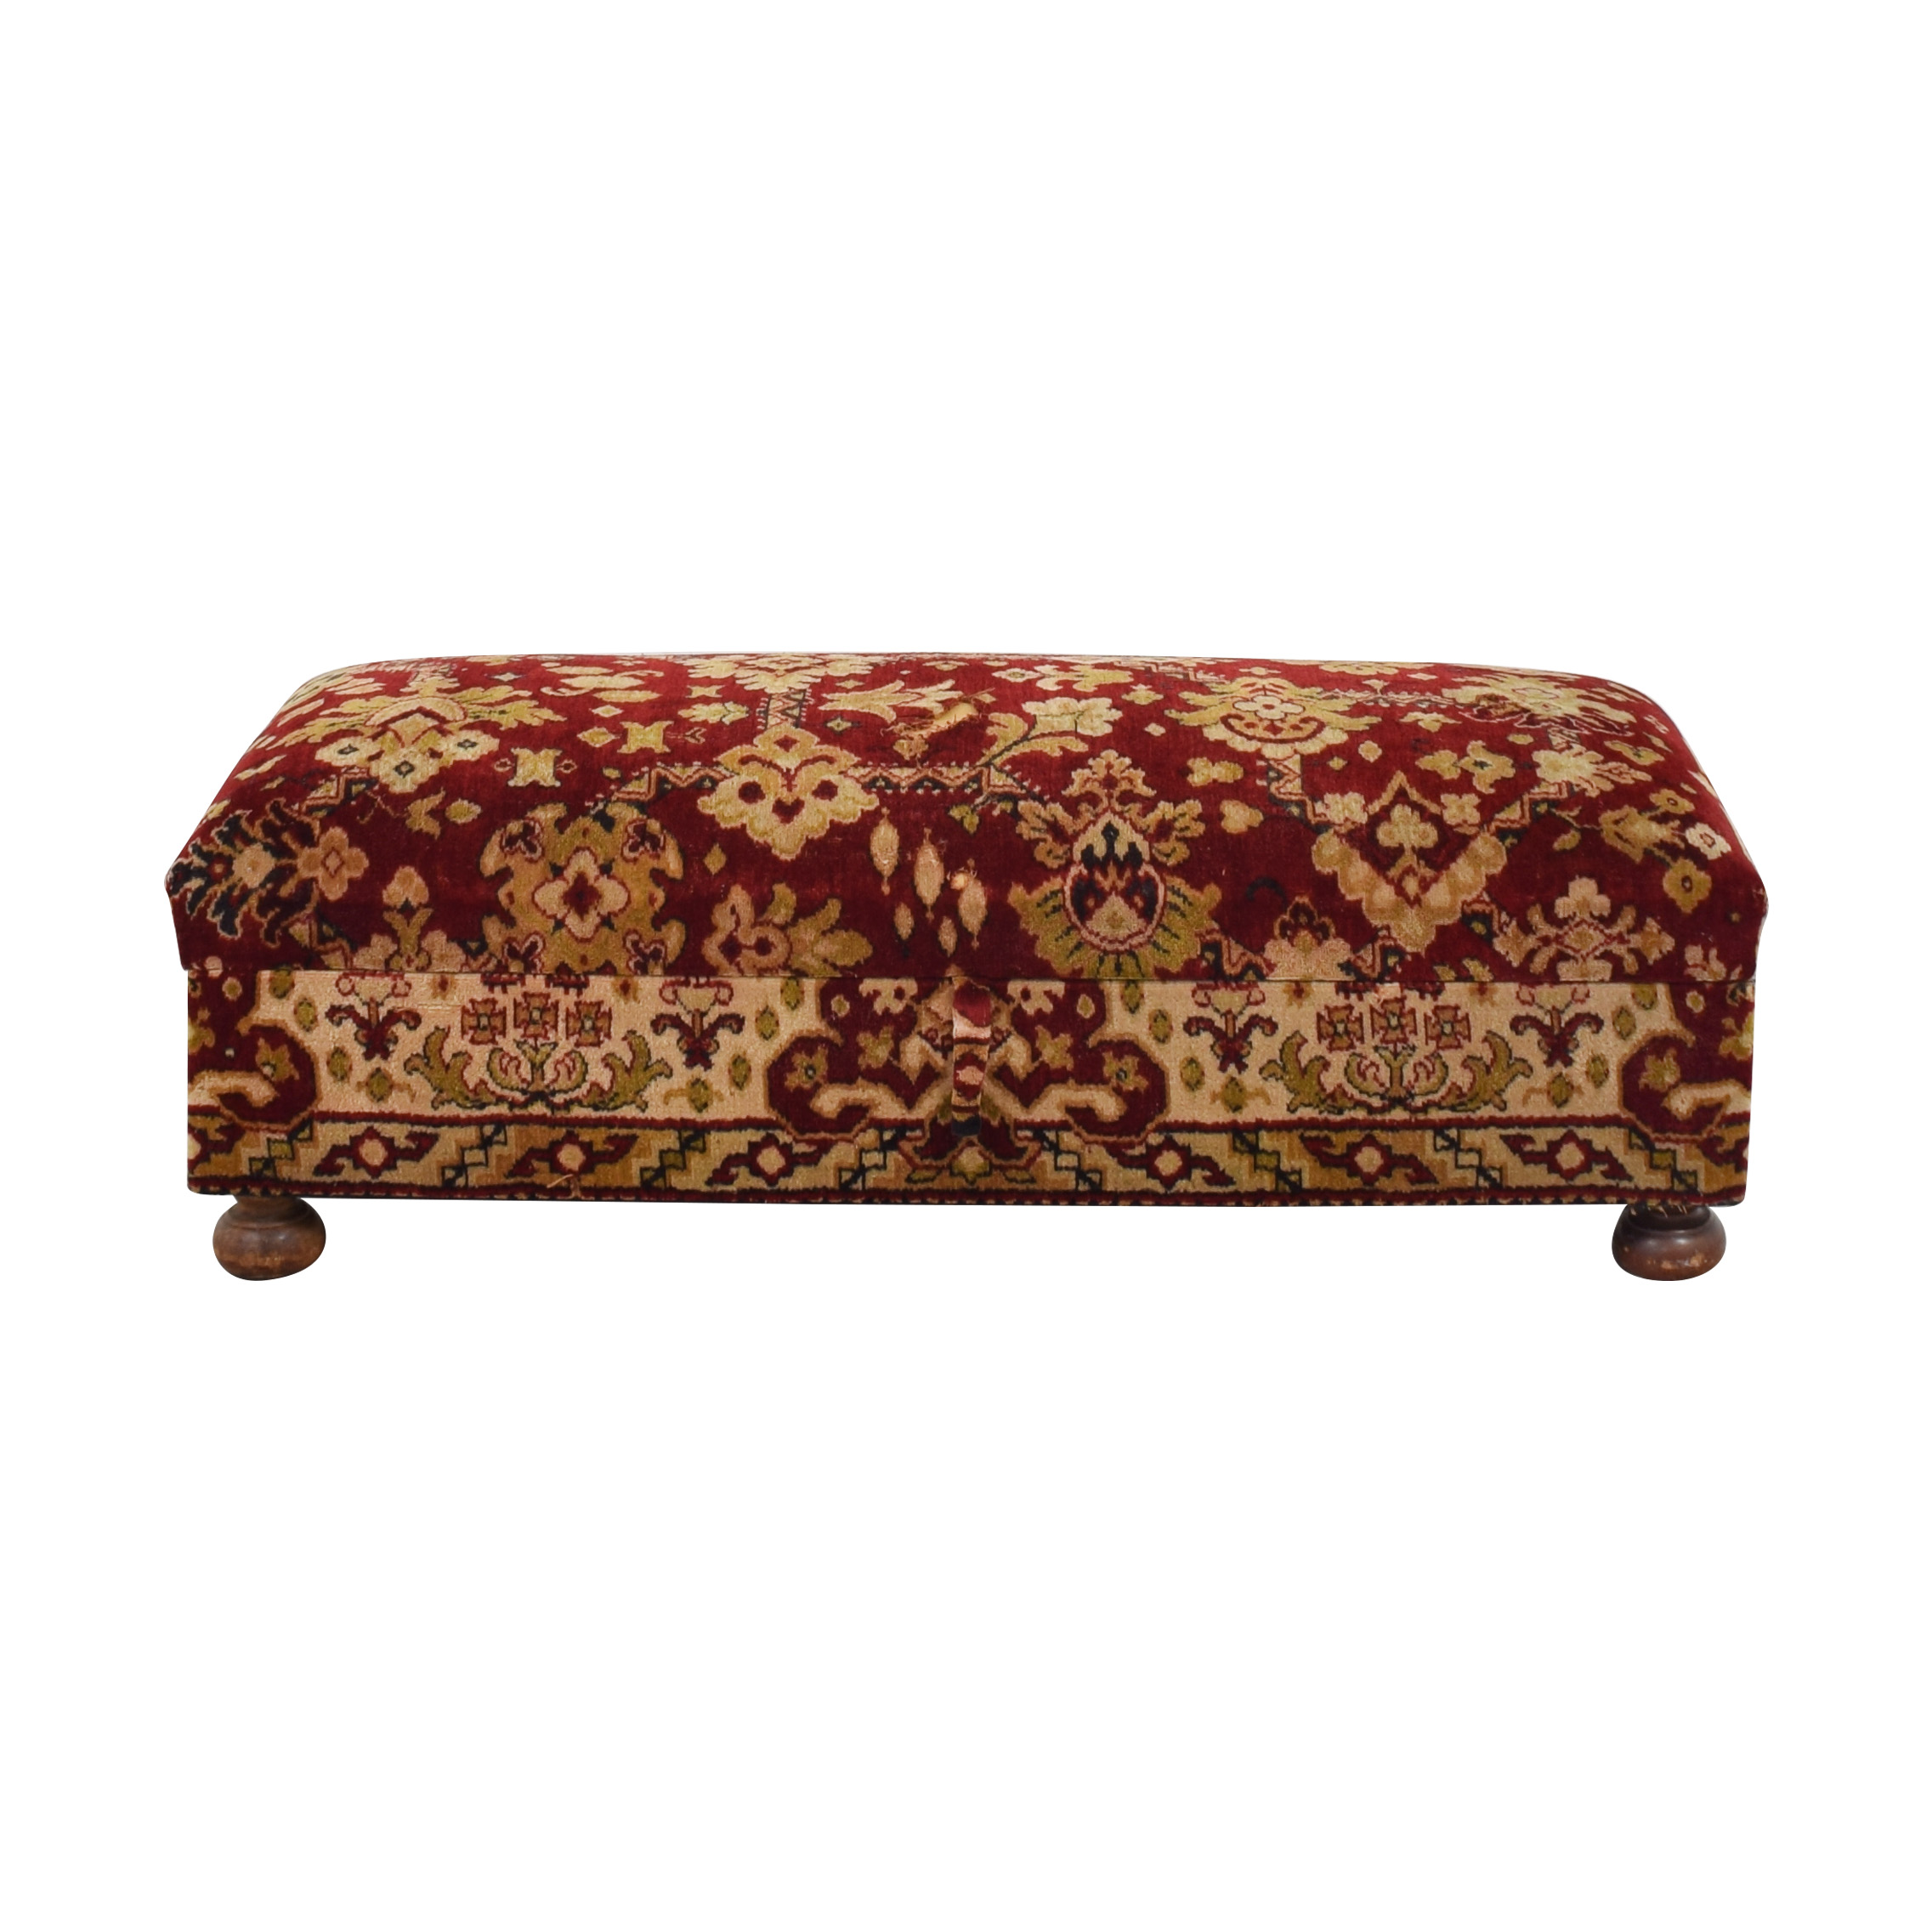 Custom Ottoman with Storage second hand